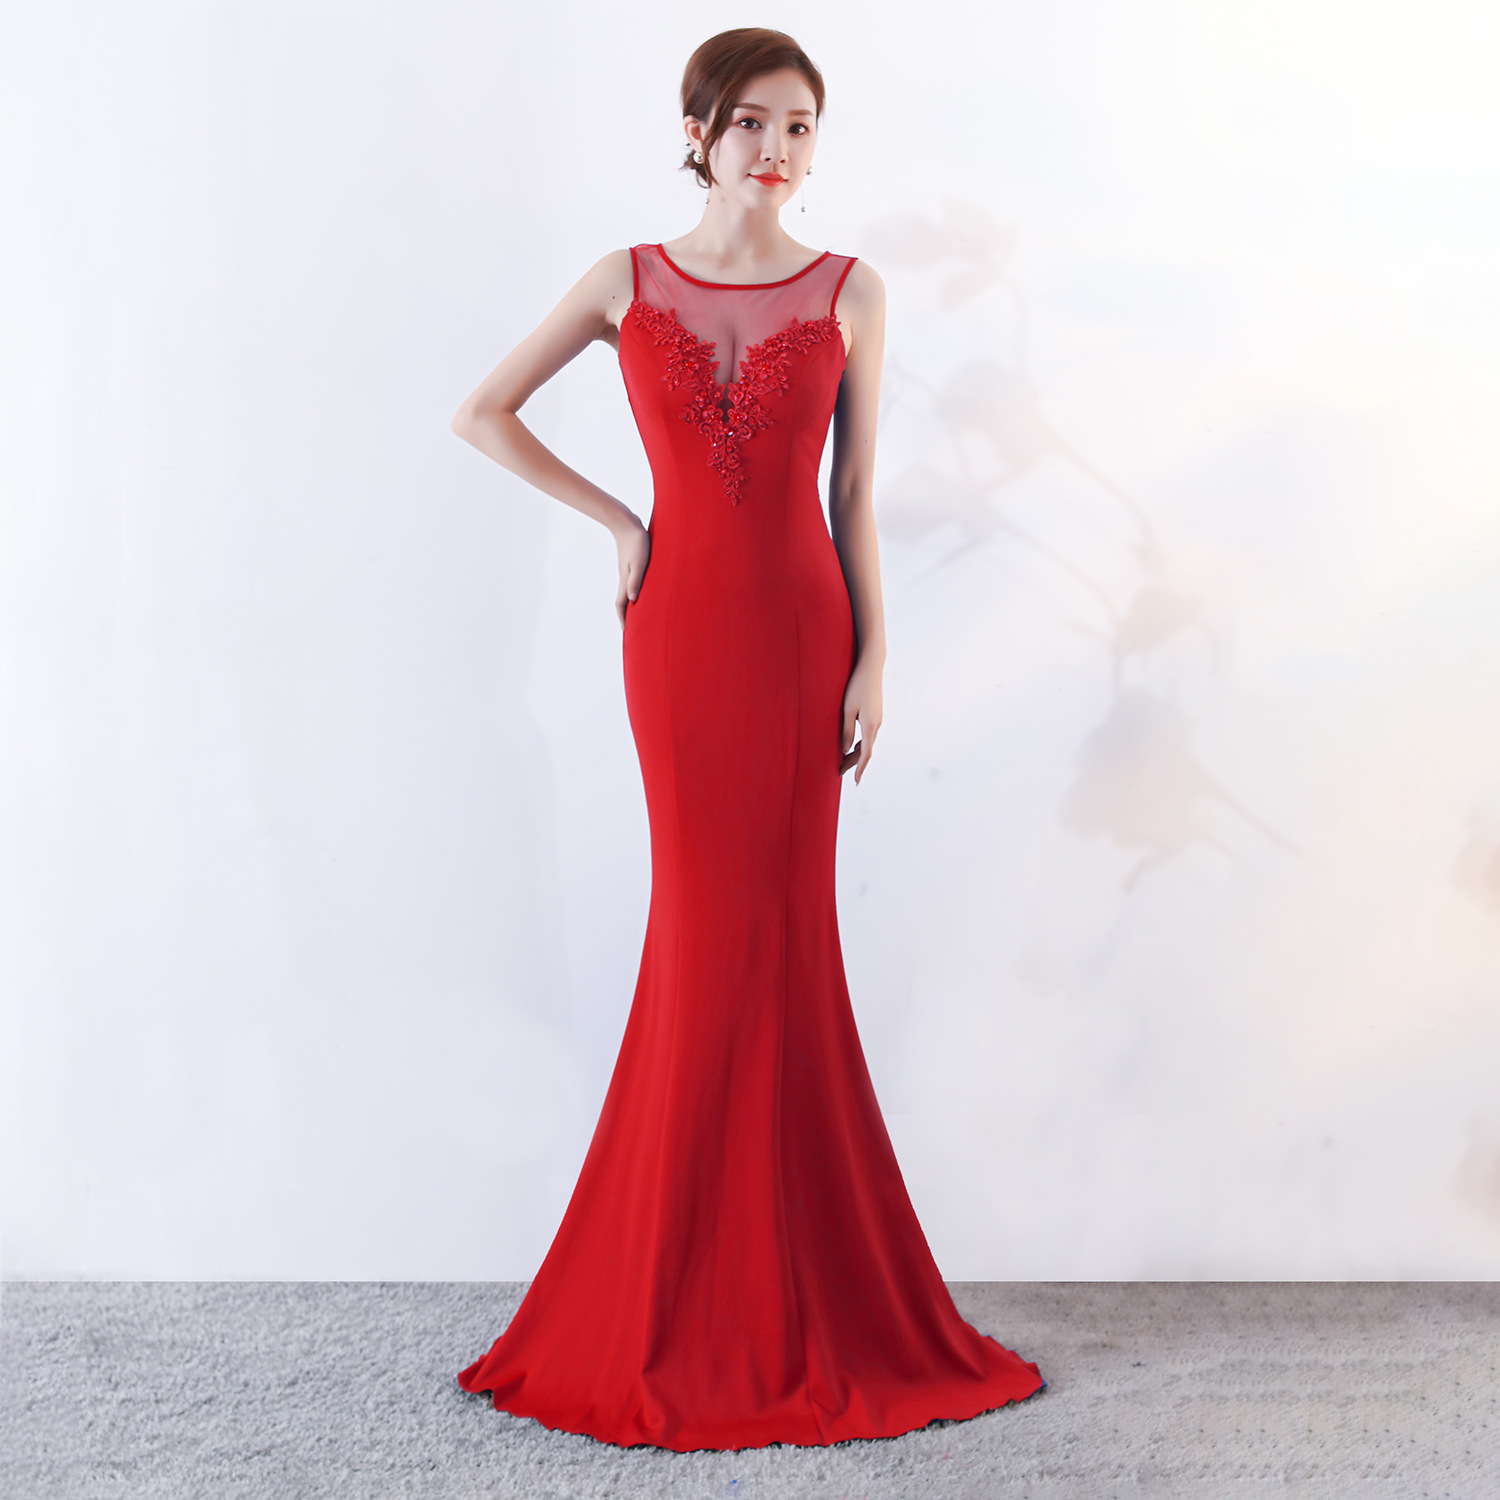 Corzzet Elegant Long Mermaid Bridal Dress Red Floral Appliques Mesh V-neck Women Fashion Club Dress Celebrity Party Dress Preventing Hairs From Graying And Helpful To Retain Complexion Women's Clothing